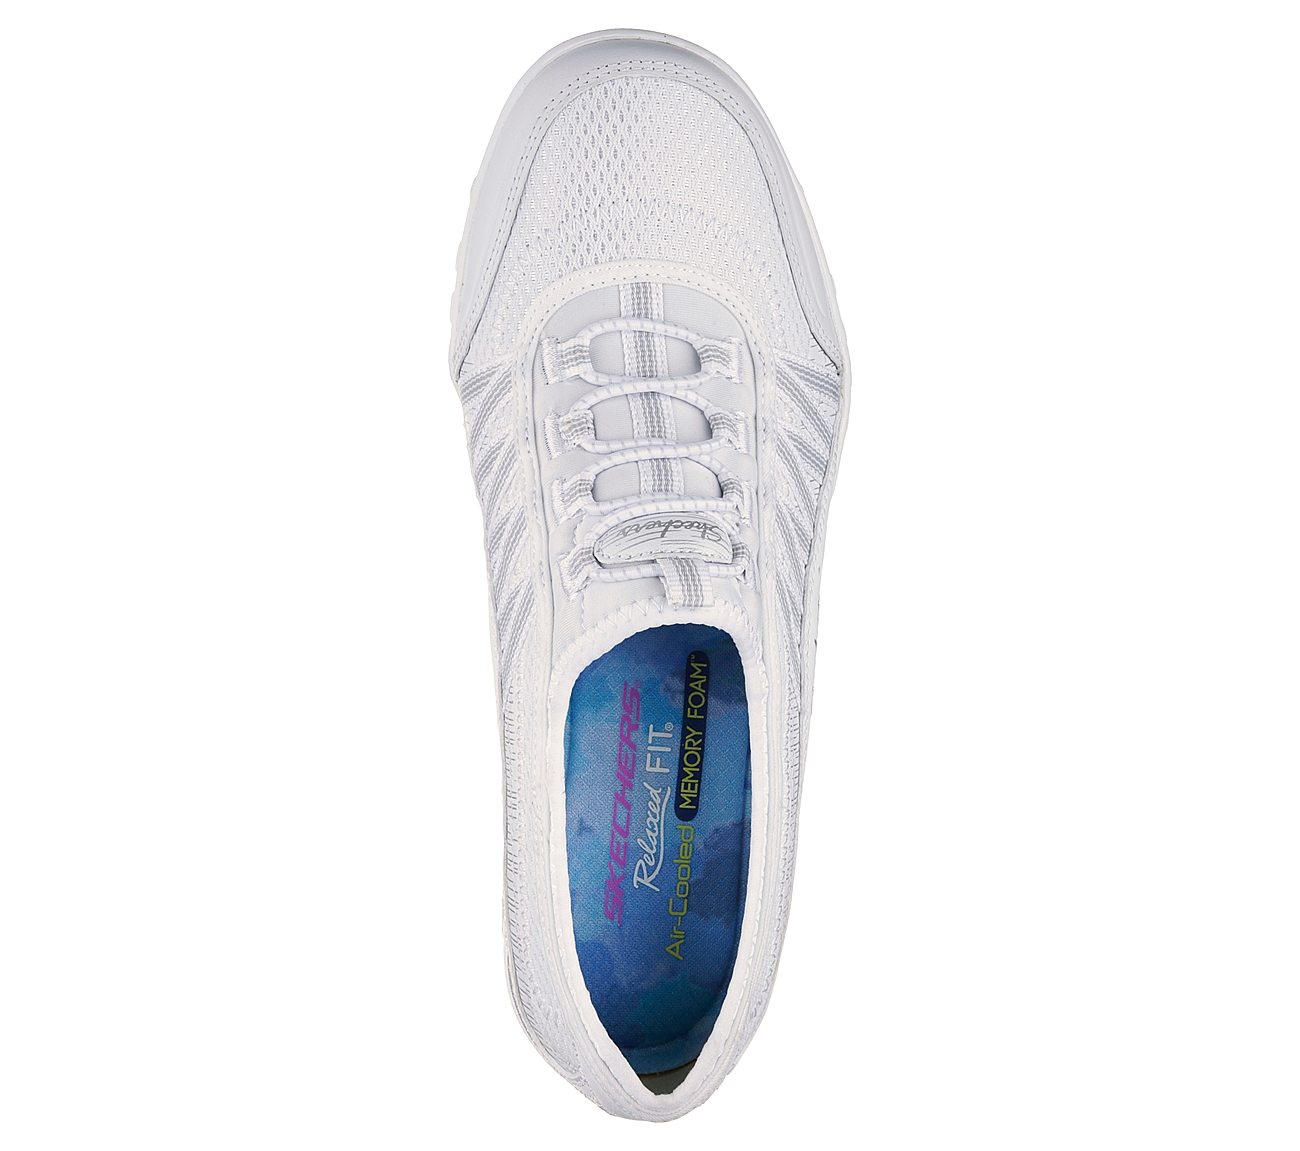 Skechers Breathe Easy Point Taken beige